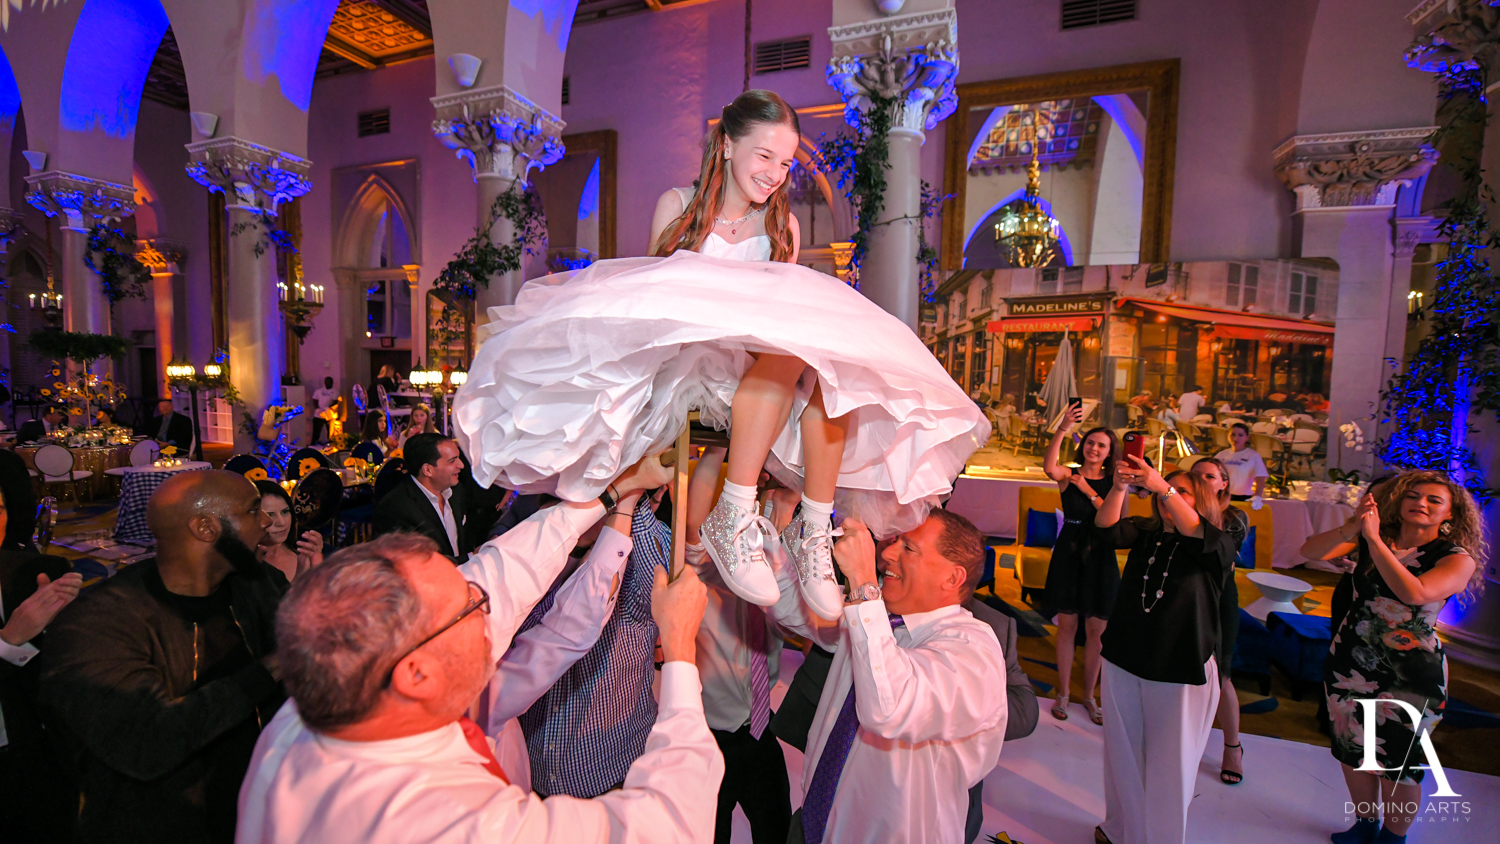 hora at Madeline in Paris theme Bat Mitzvah at Boca Raton Resort and Club by Domino Arts Photography